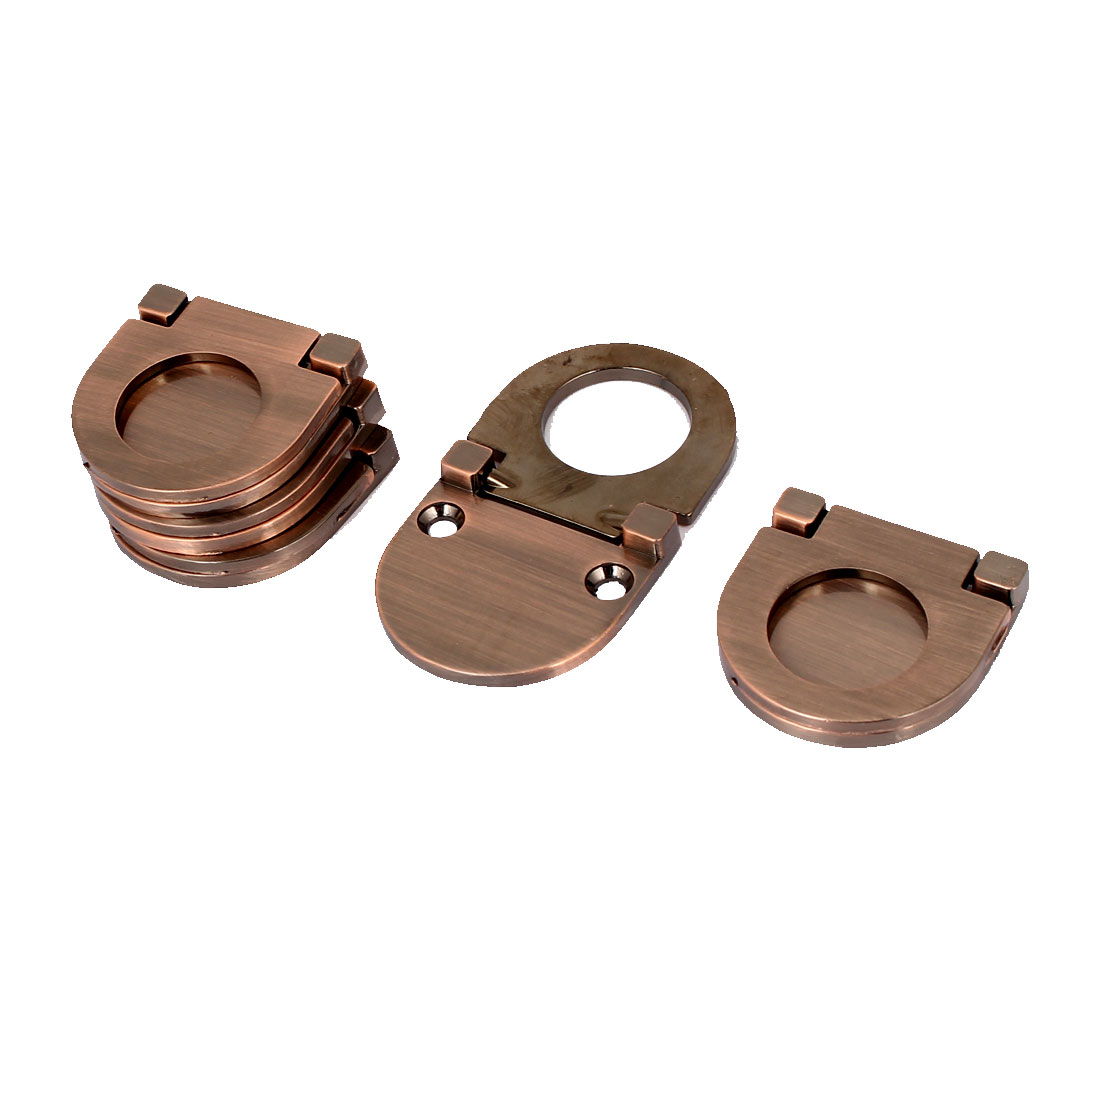 Cupboard Chest Drawer Metal Flush Mount Pull Ring Handle Copper Tone 5pcs